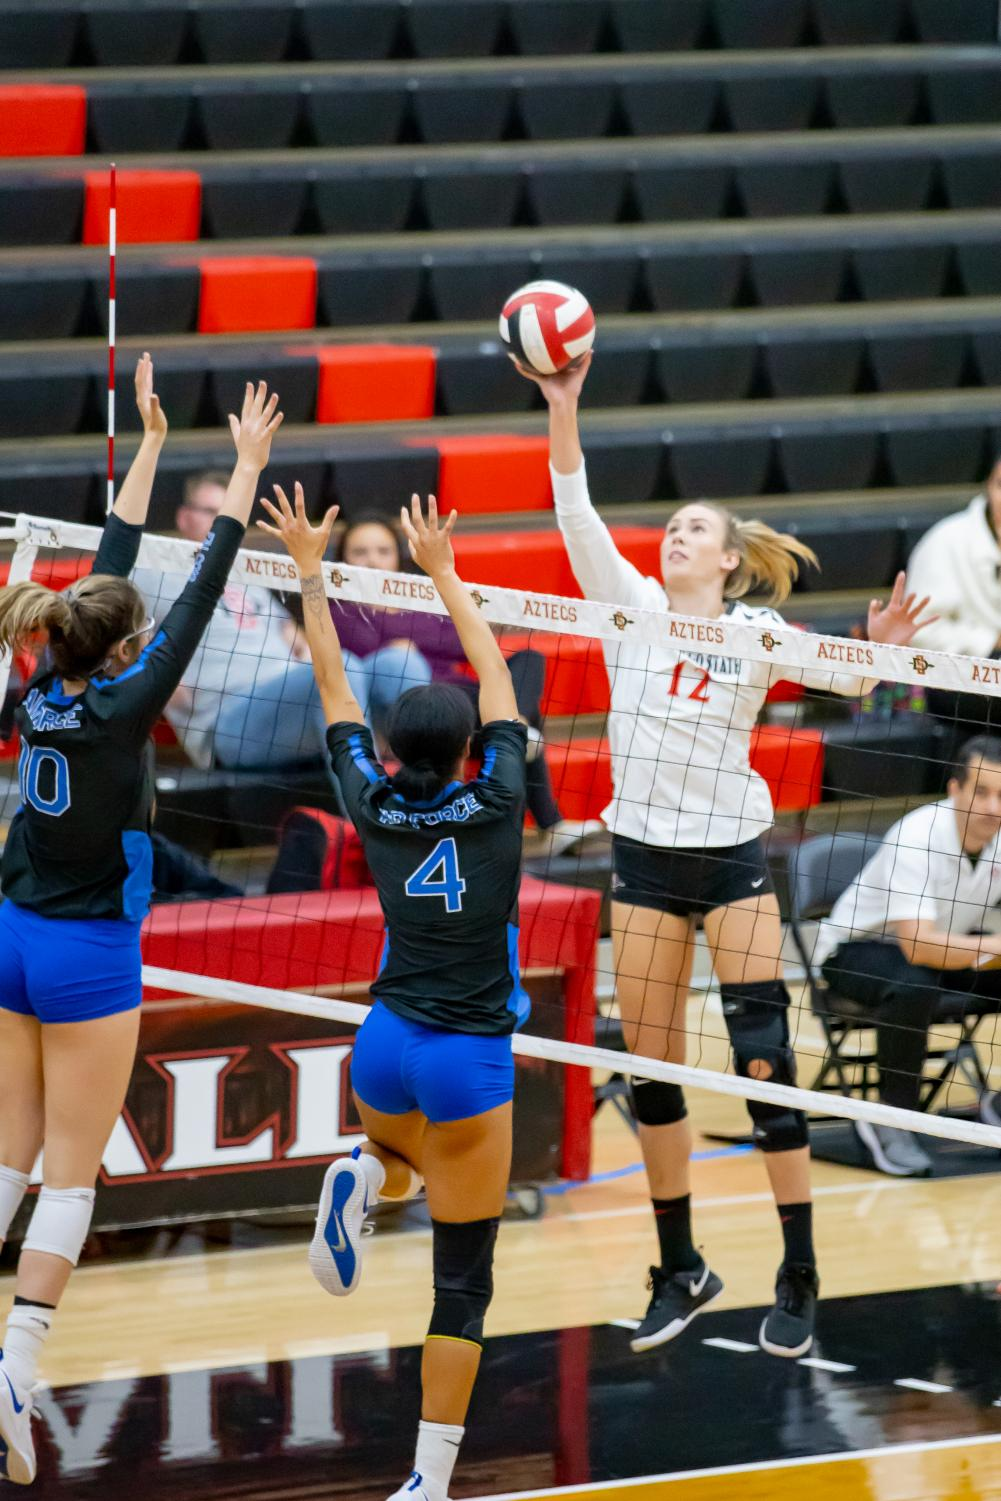 Junior outside hitter Erin Gillcrist gets the ball over the net in the Aztecs' 3-1 win over Air Force on Nov. 14 at Peterson Gym.